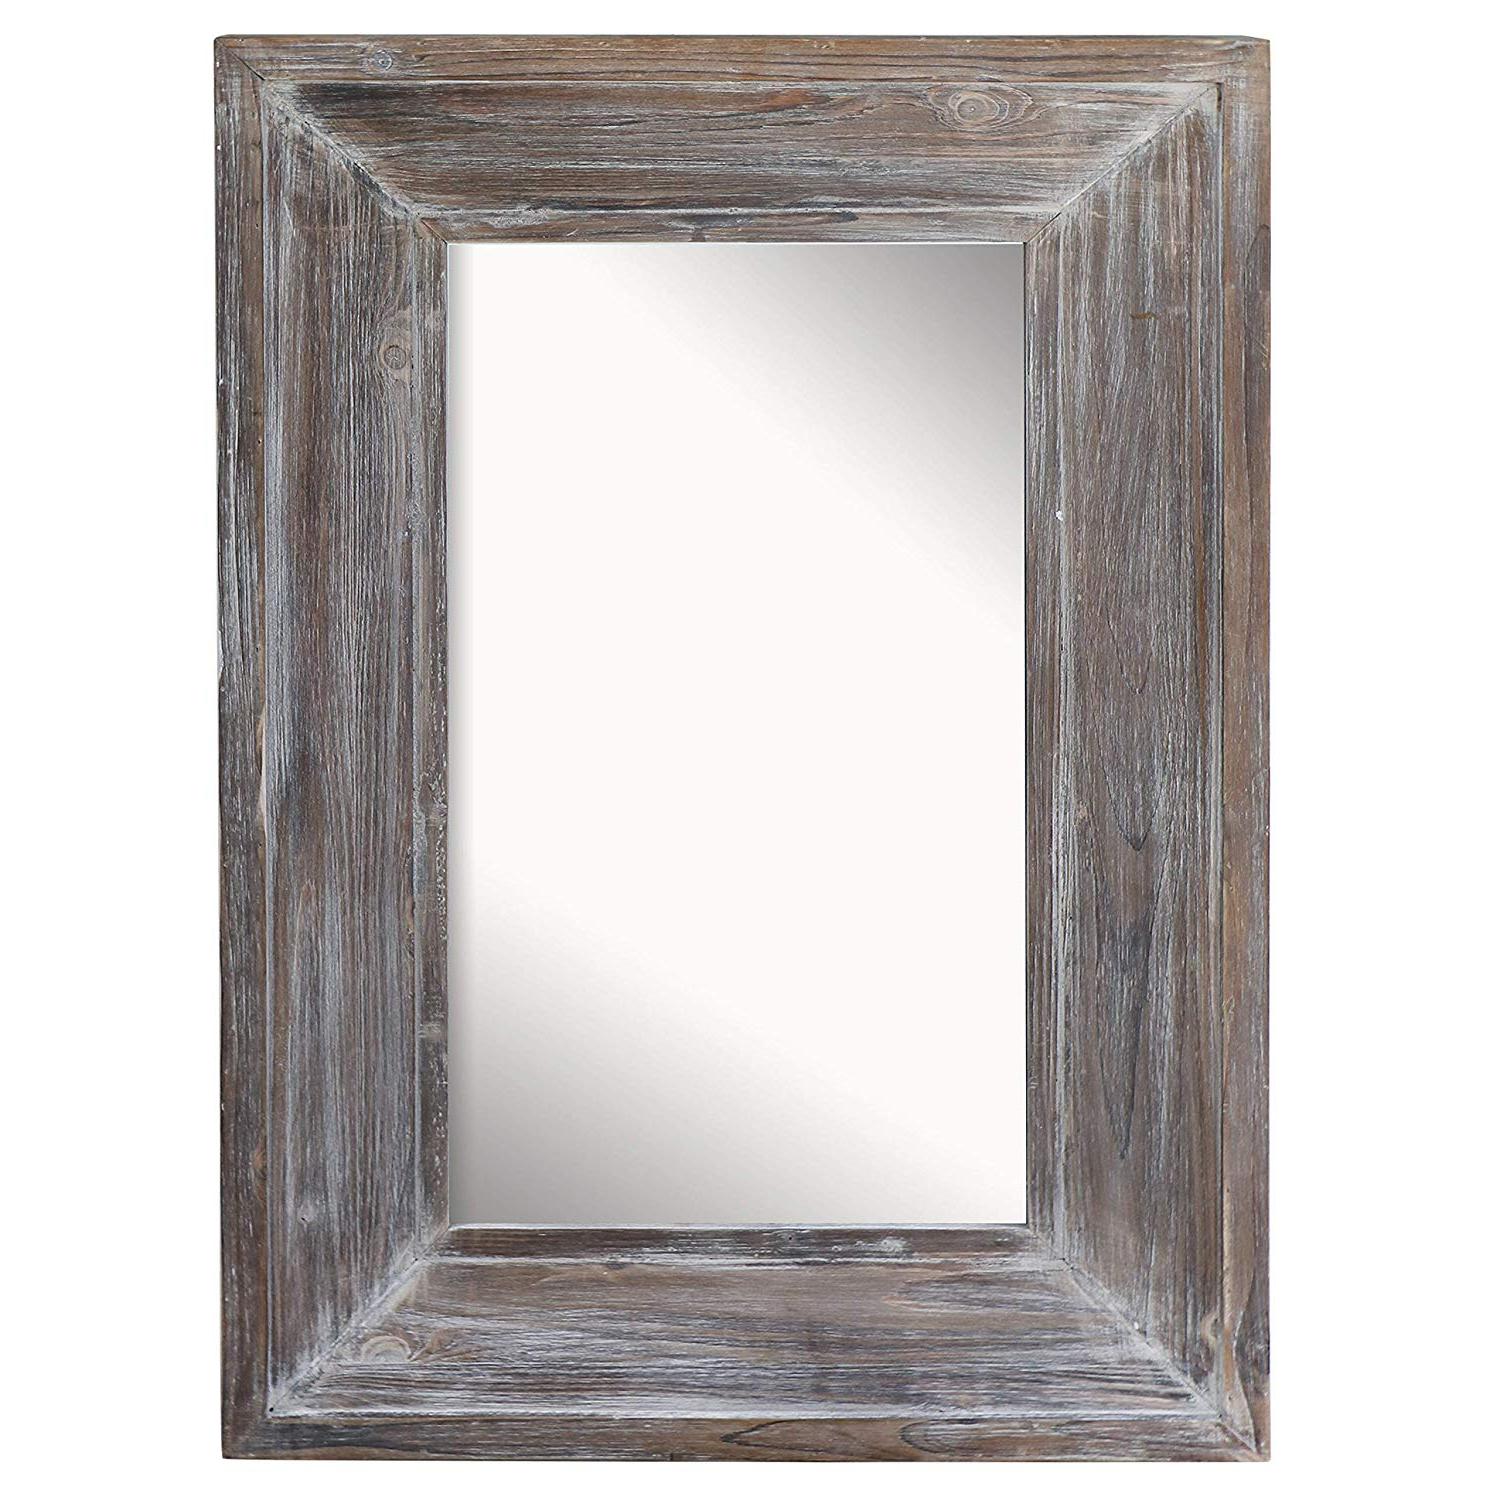 "Barnyard Designs Decorative Wall Mirror Rustic Distressed Natural Wood  Frame Vertical Hanging Mirror Wall Decor 36"" X 24"" For 2020 Distressed Wood Wall Mirrors (View 3 of 20)"